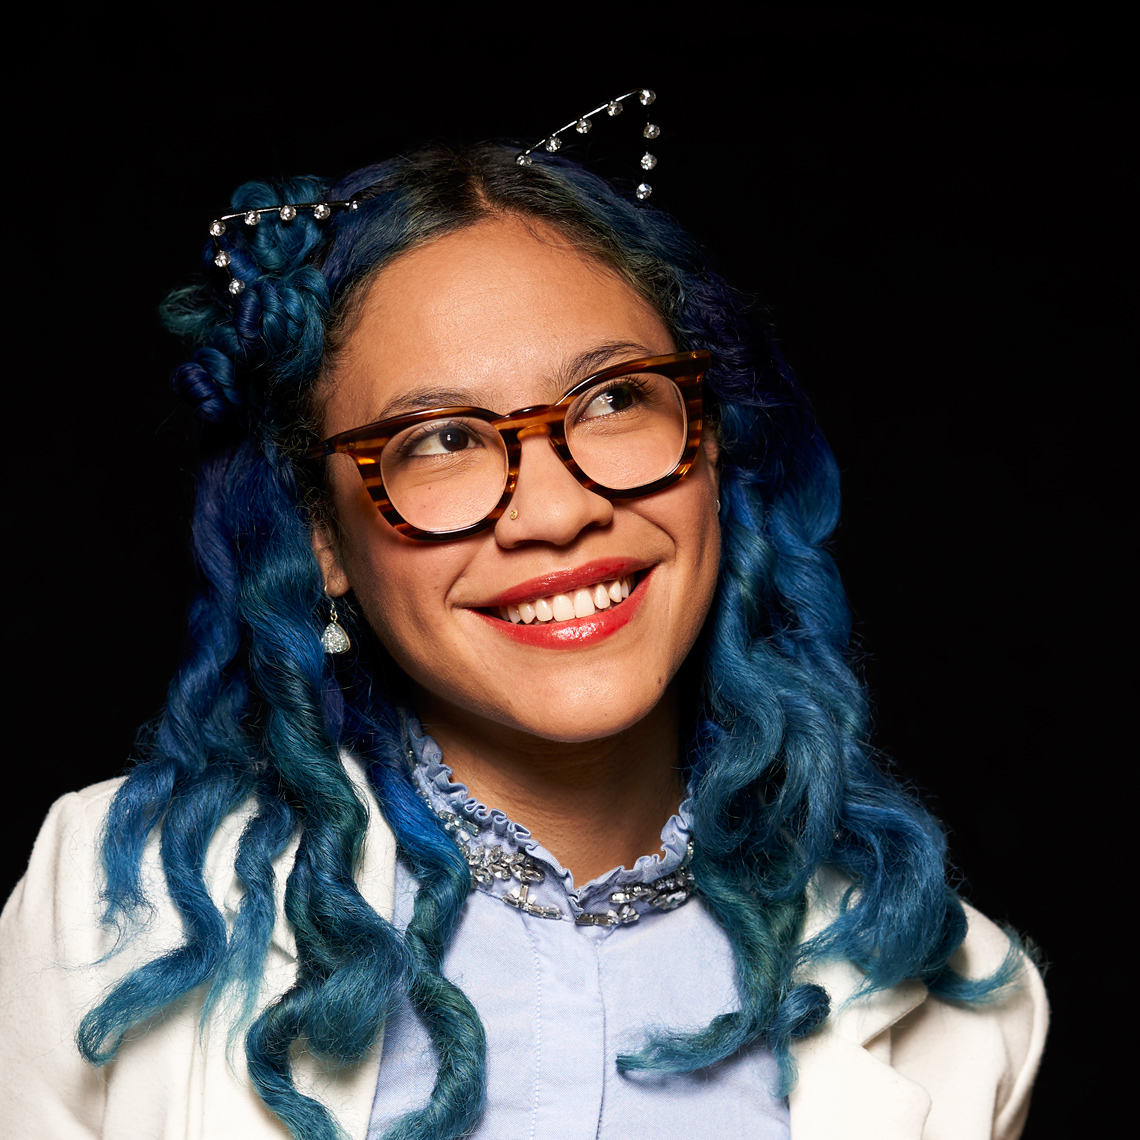 Ms Williams Millennial with Blue hair and cat ears